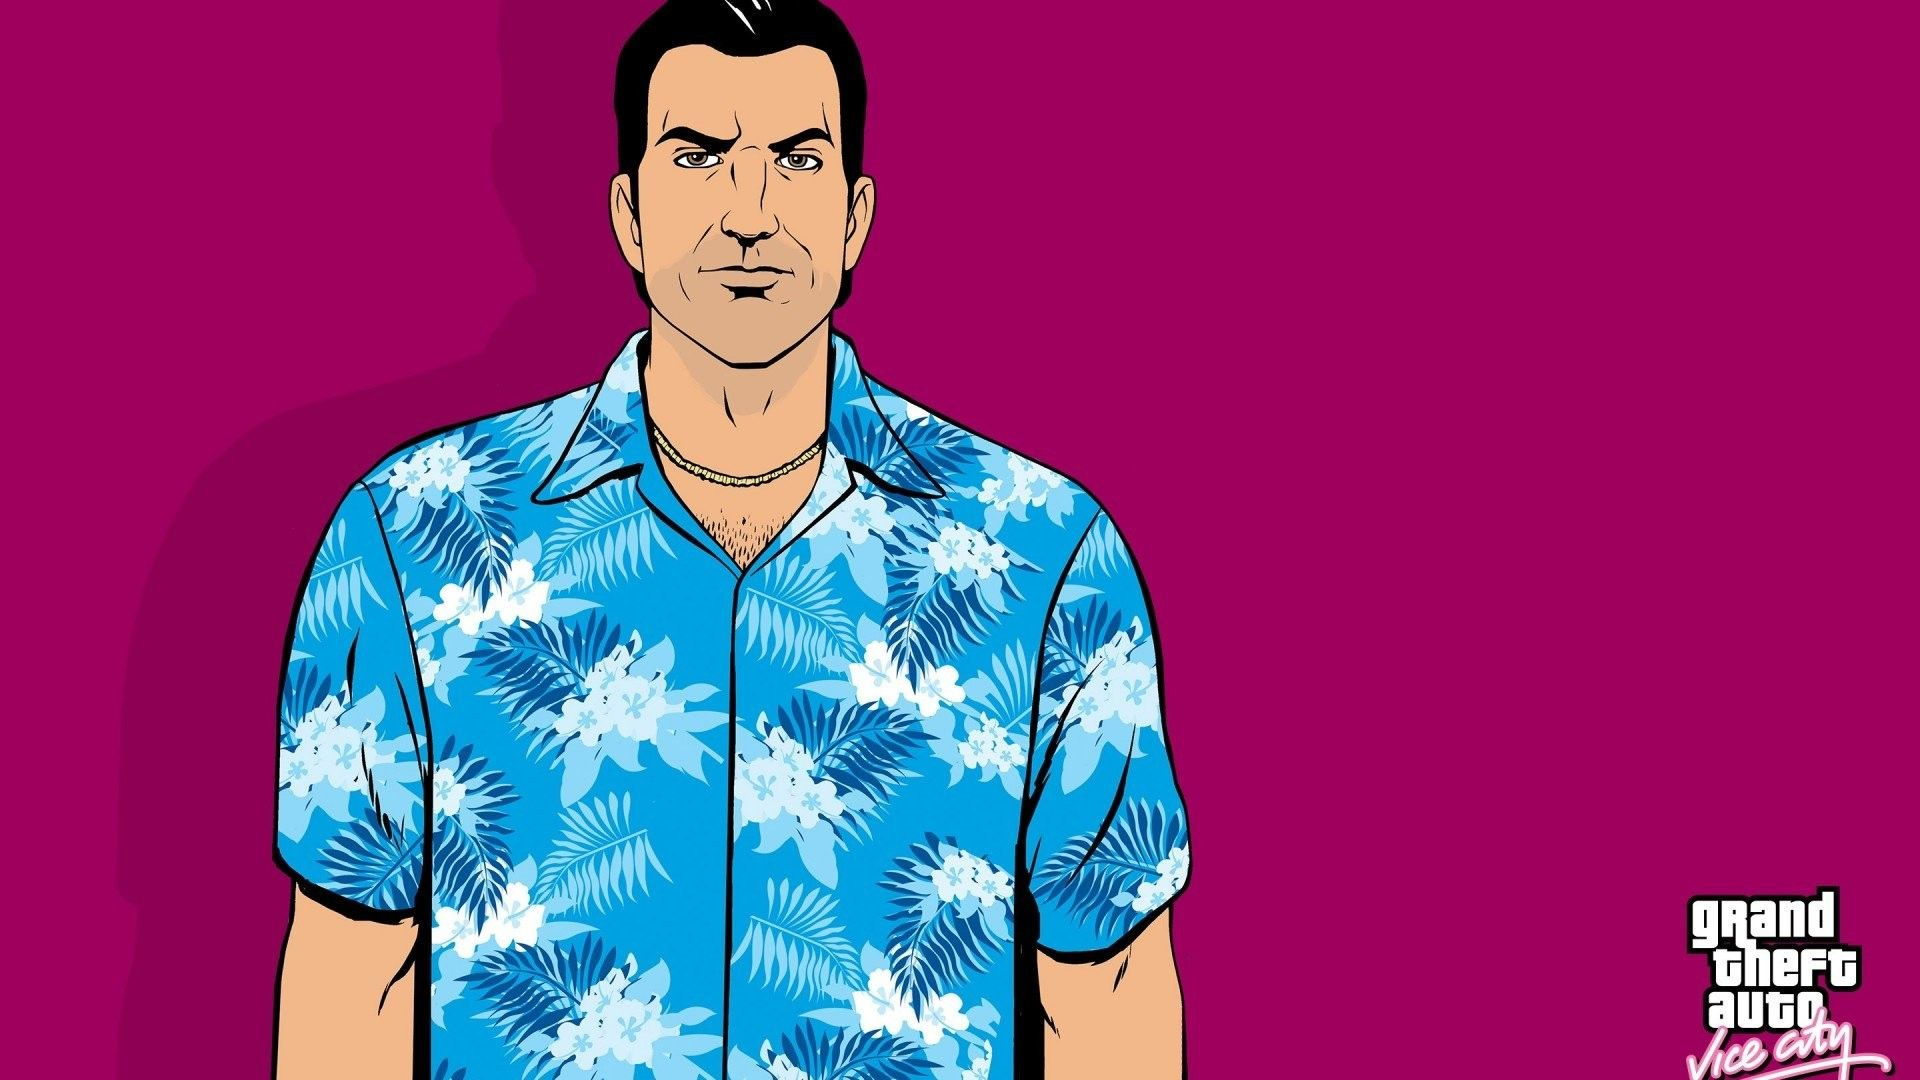 Gta Vice City Wallpapers 67 Images Gta City Wallpaper Cool Gifs